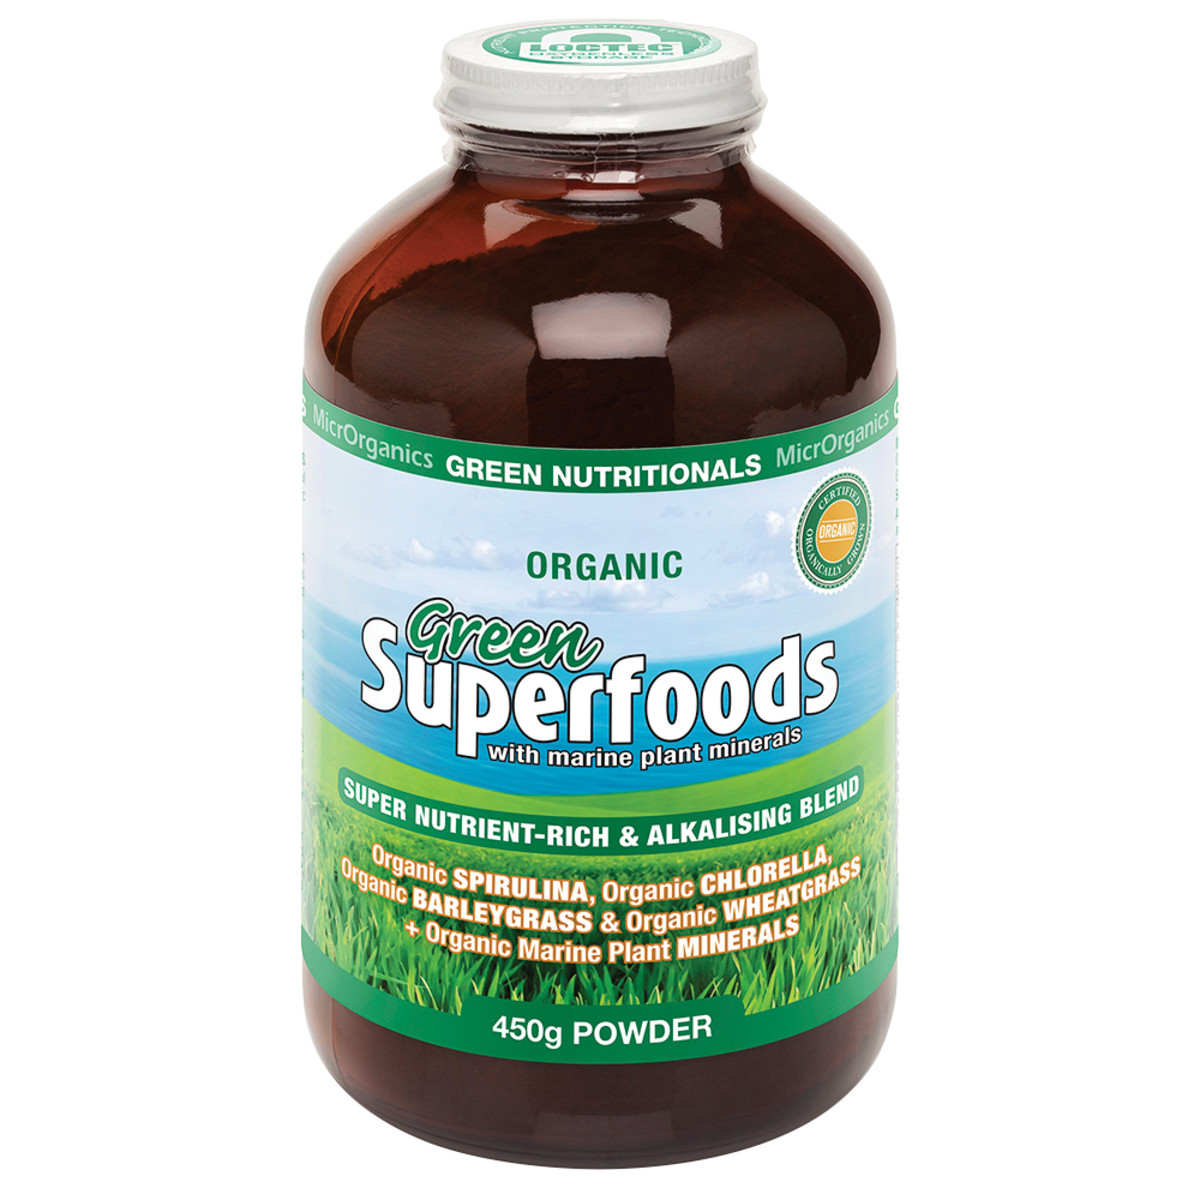 MICRORGANICS GREEN NUTRITIONALS SUPERFOODS 450G PWDR